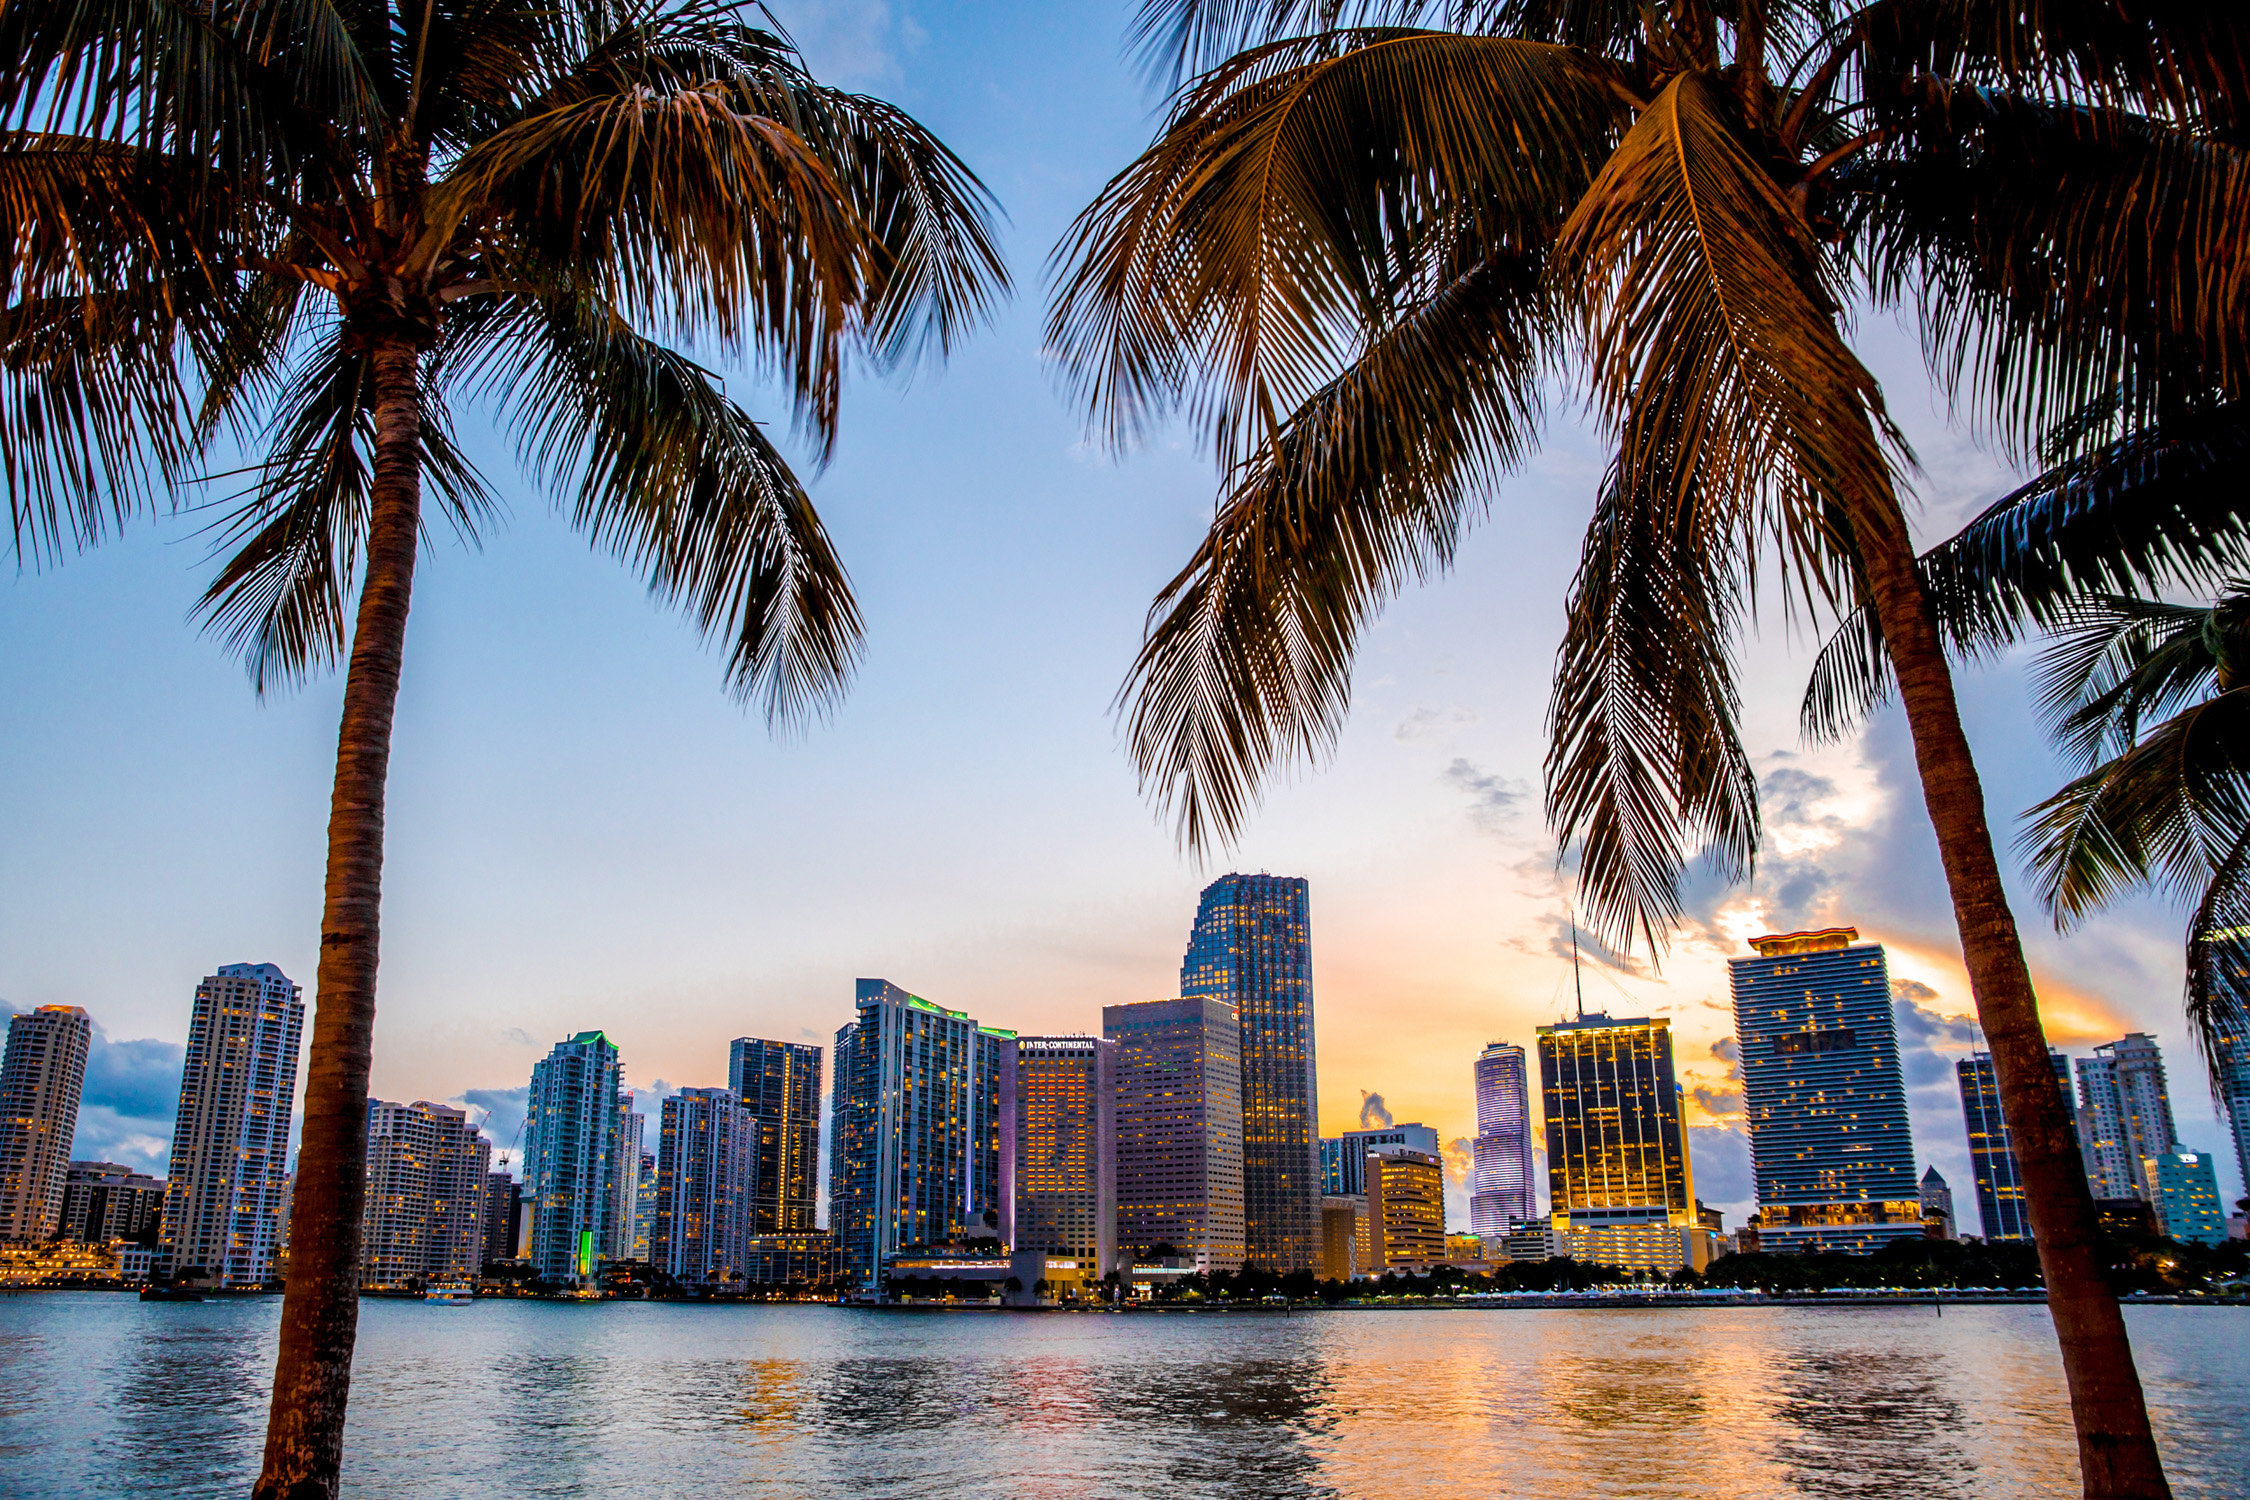 Hotels In Miami Florida With Free Breakfast